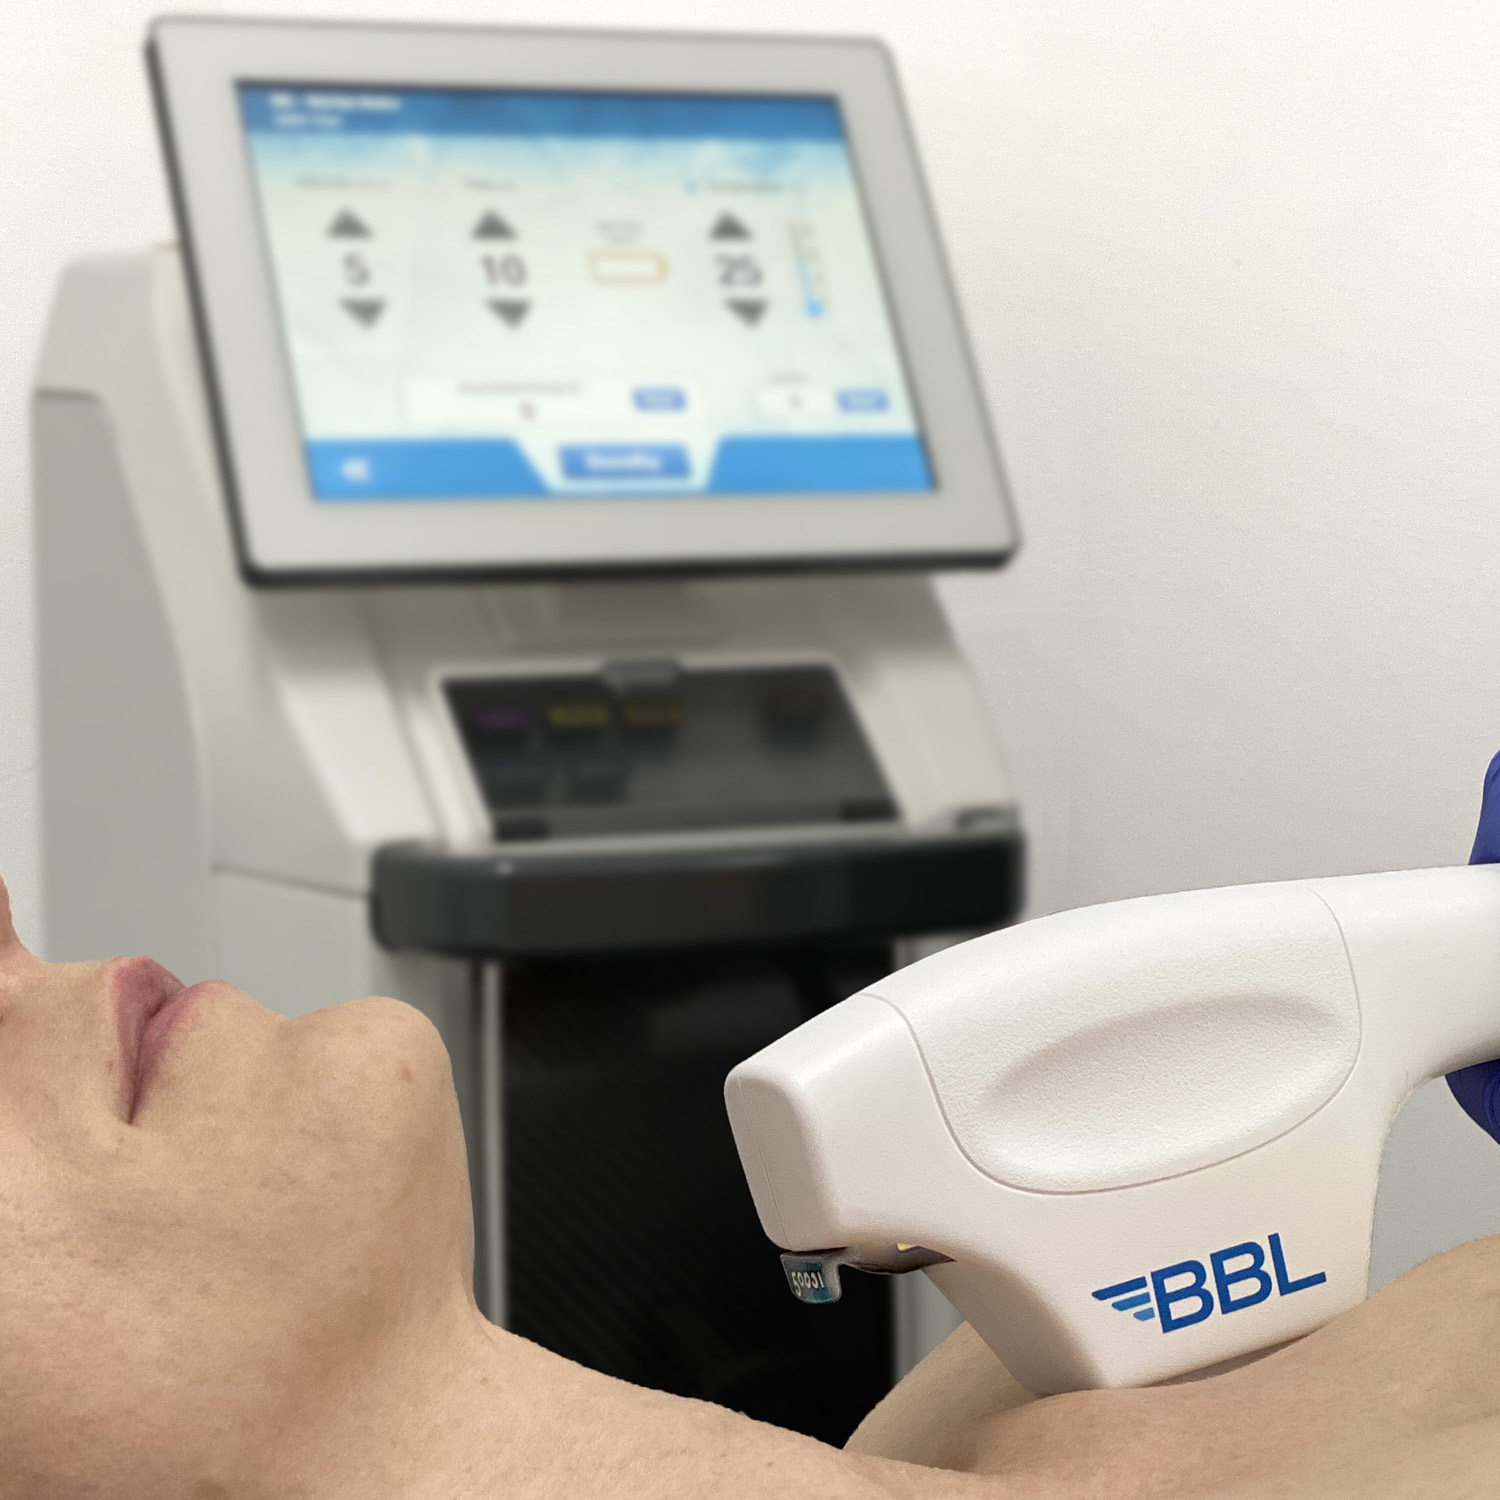 IPL treatment applied to a woman's arm